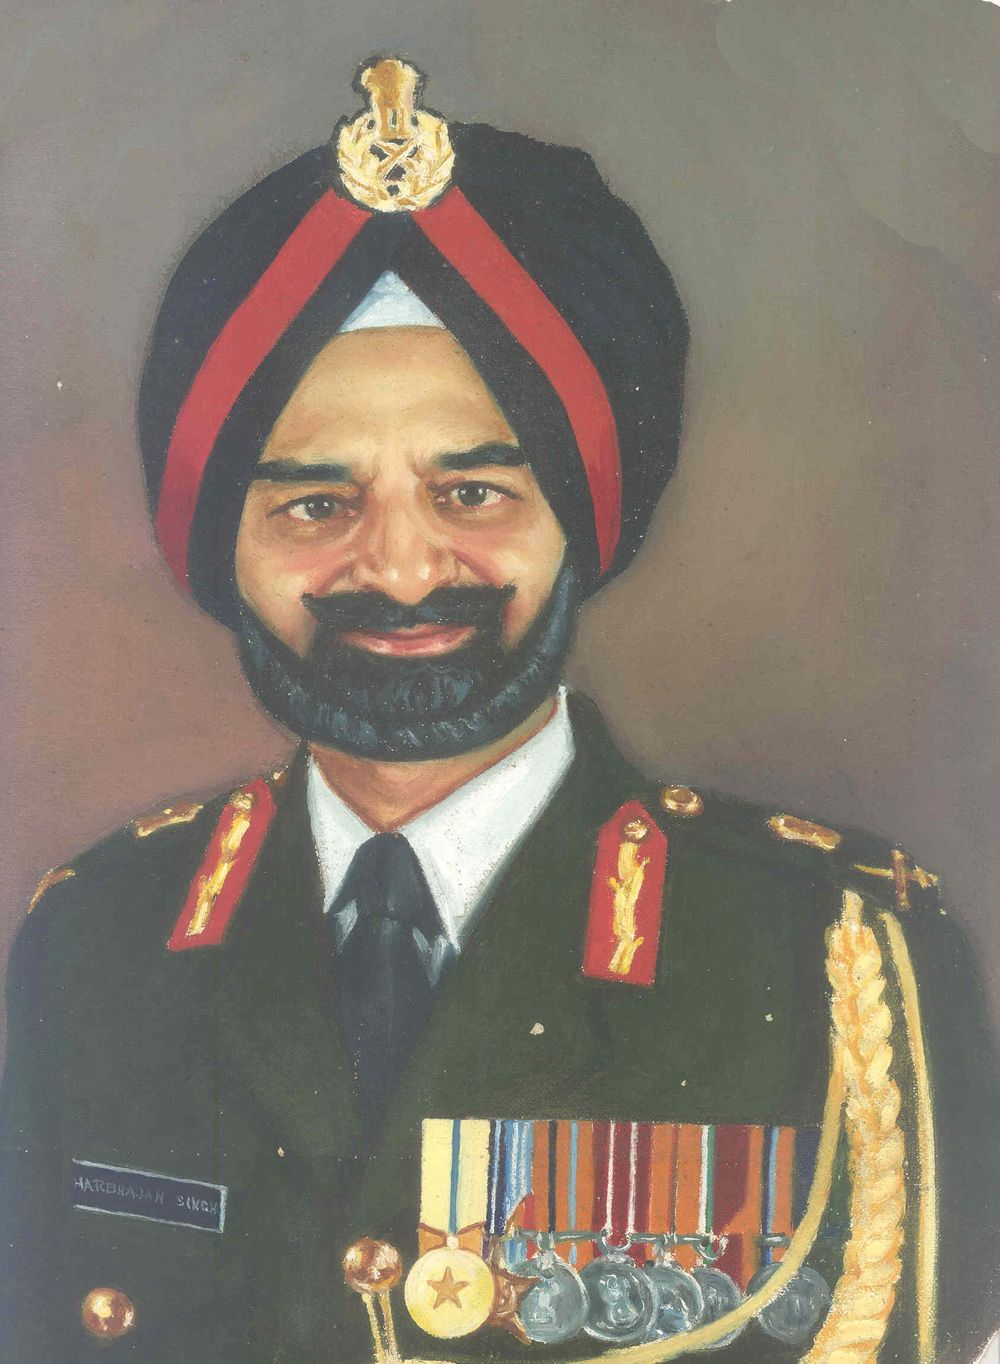 Lieutenant General Harbhajan Singh, PVSM, ex-SO-in-C (1st Course JSW/NDA)